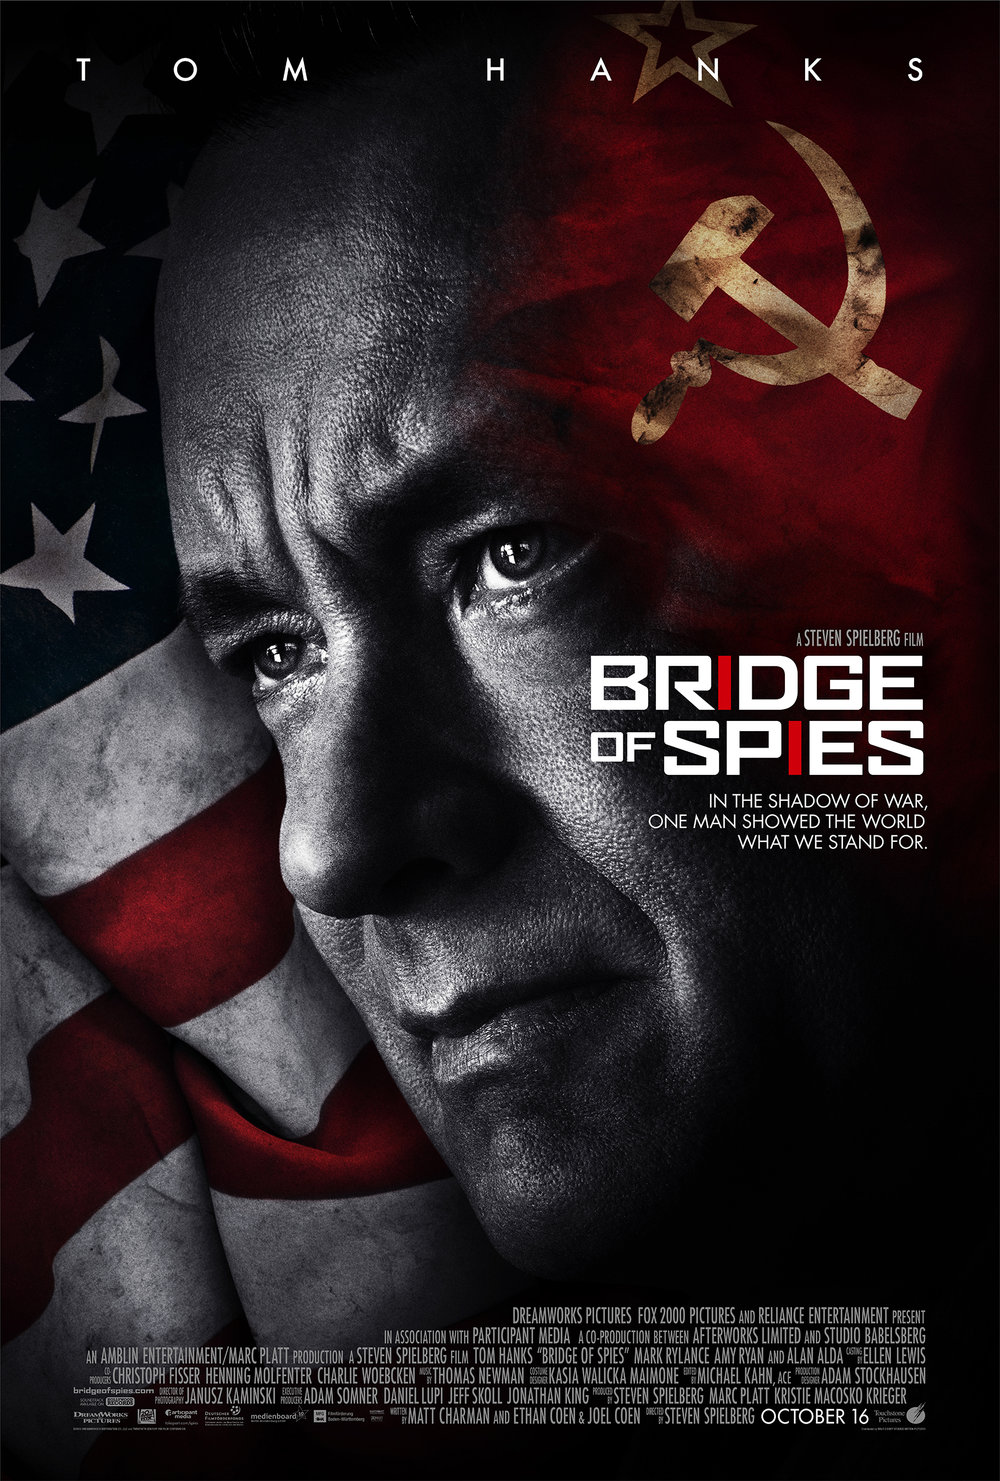 BridgeOfSpies_1Sht.jpg